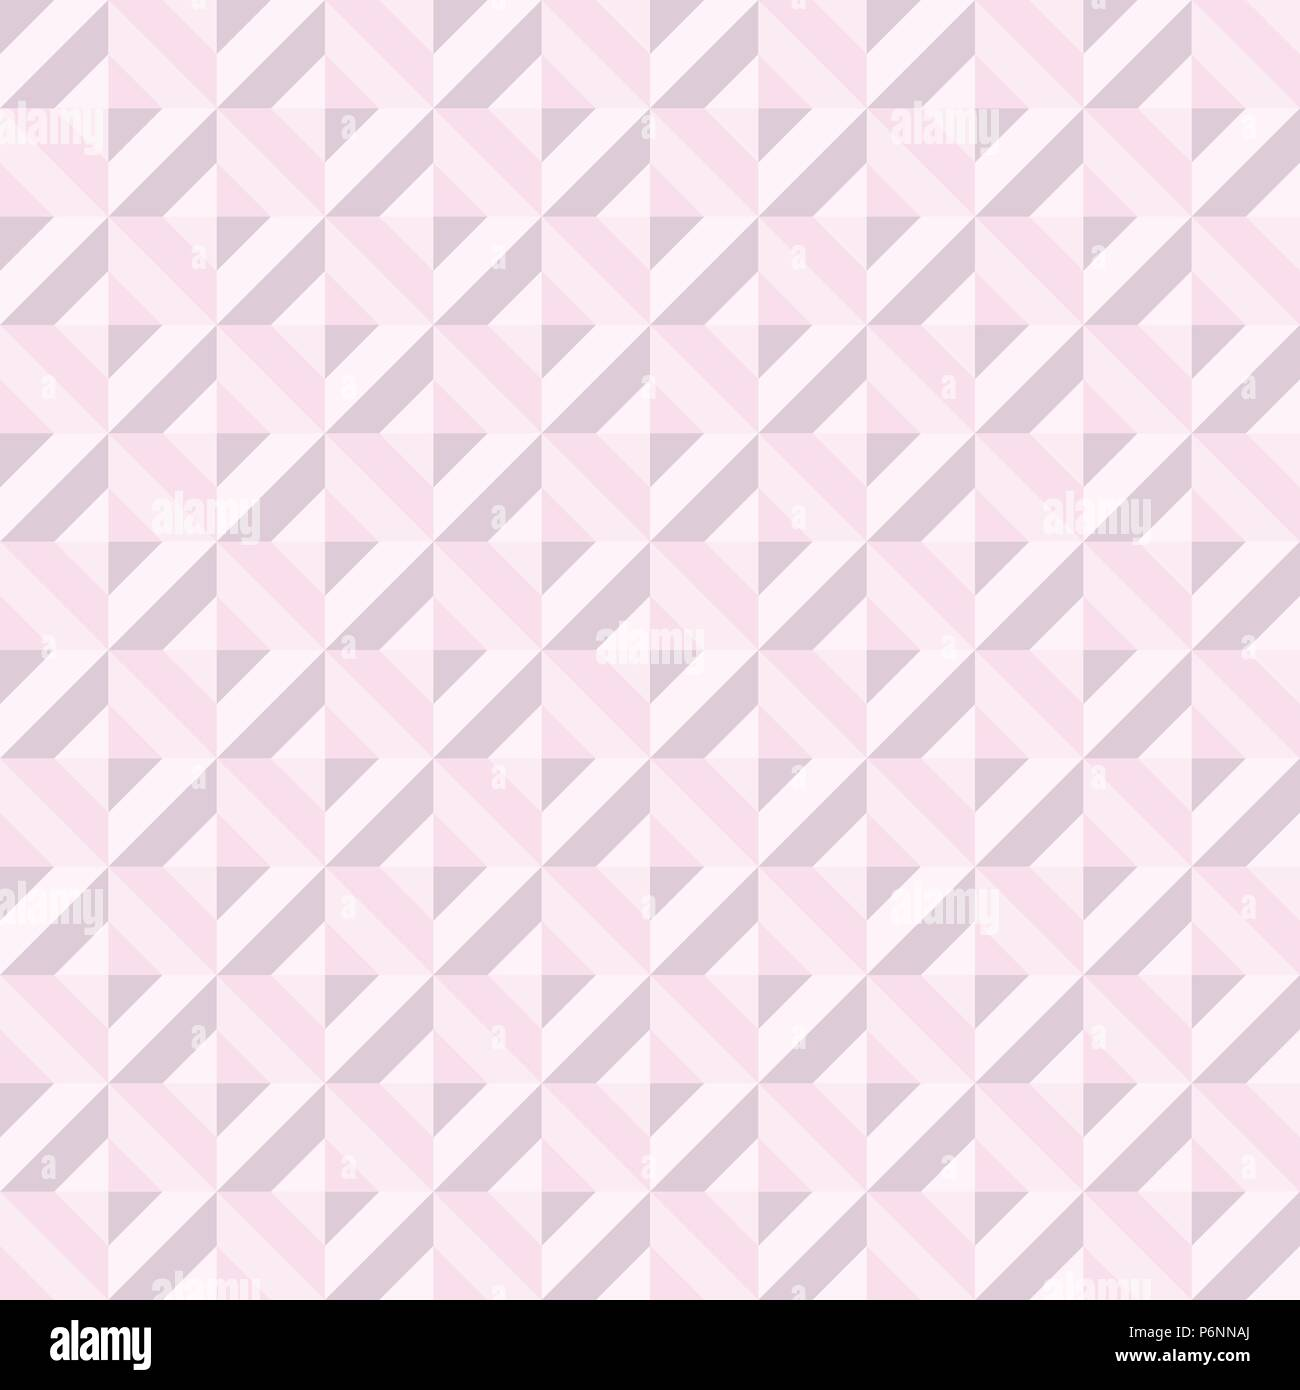 Pink Abstract rectangle seamless pattern. Modern rectangle for graphic design. - Stock Vector